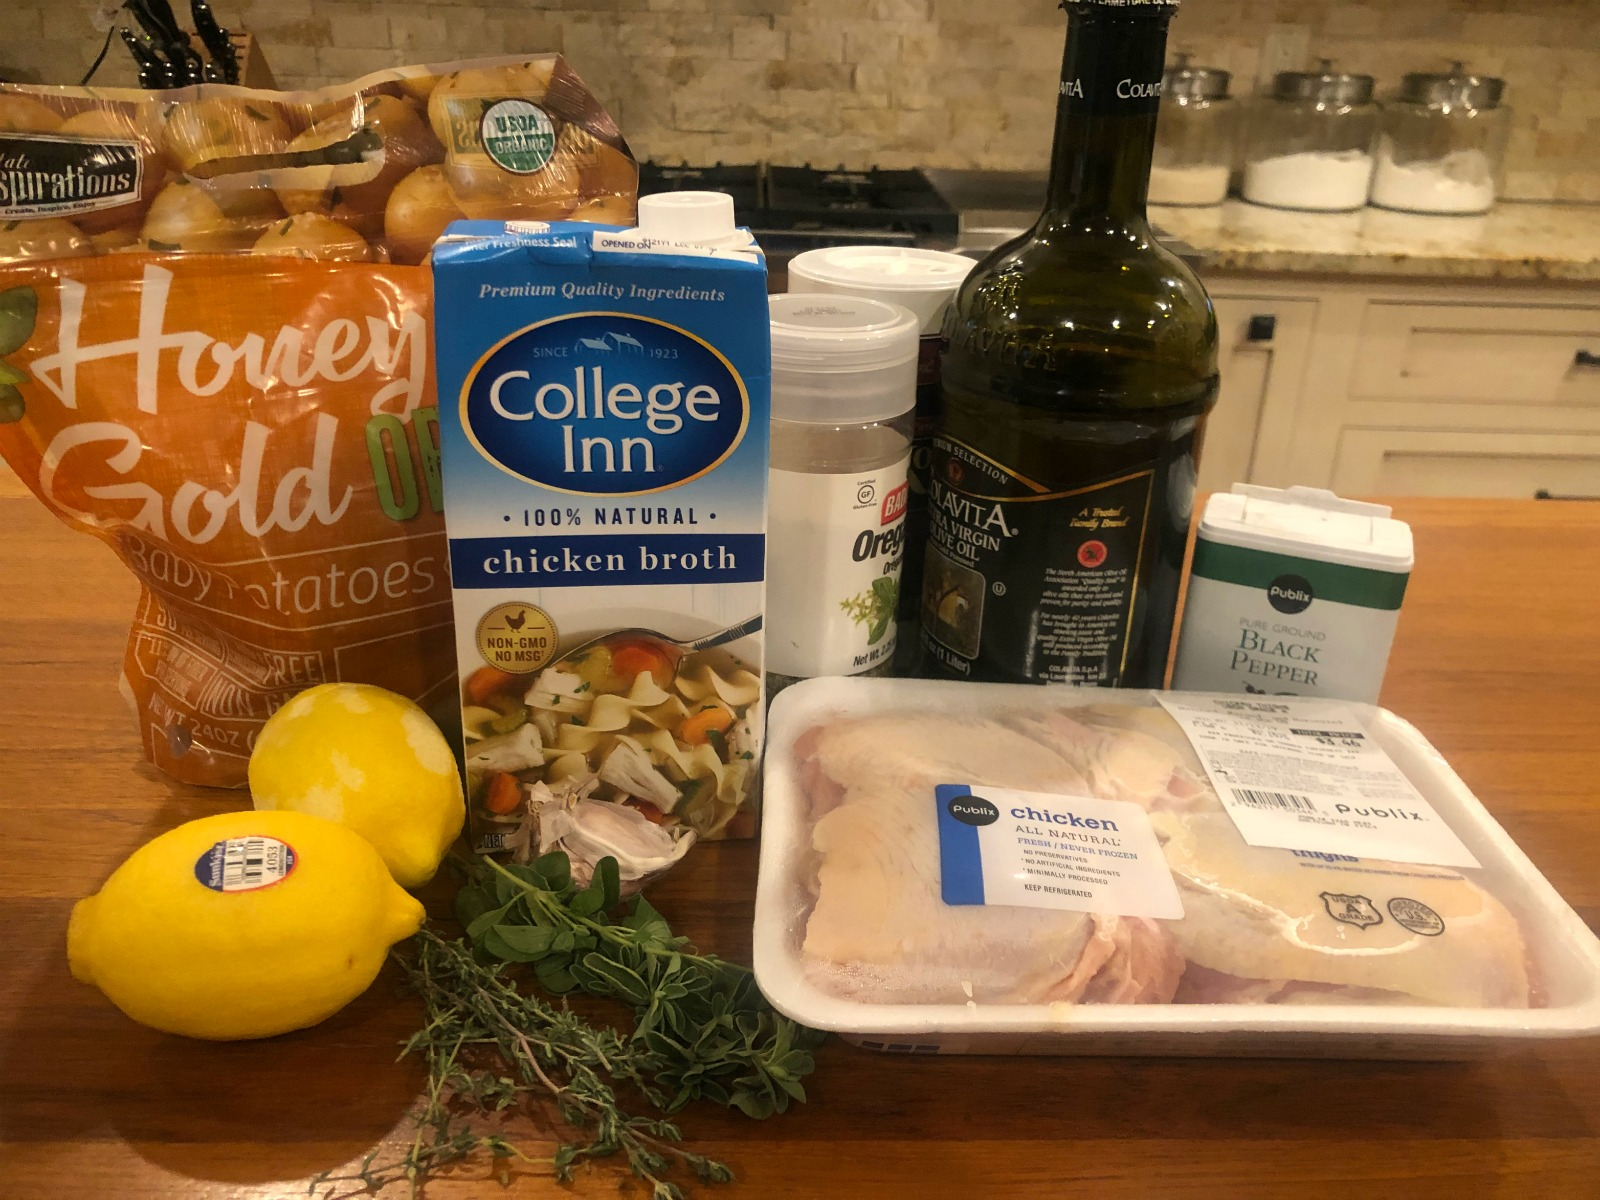 Roasted Greek Chicken With Potatoes - Super Meal To Go With The Sales At Publix on I Heart Publix